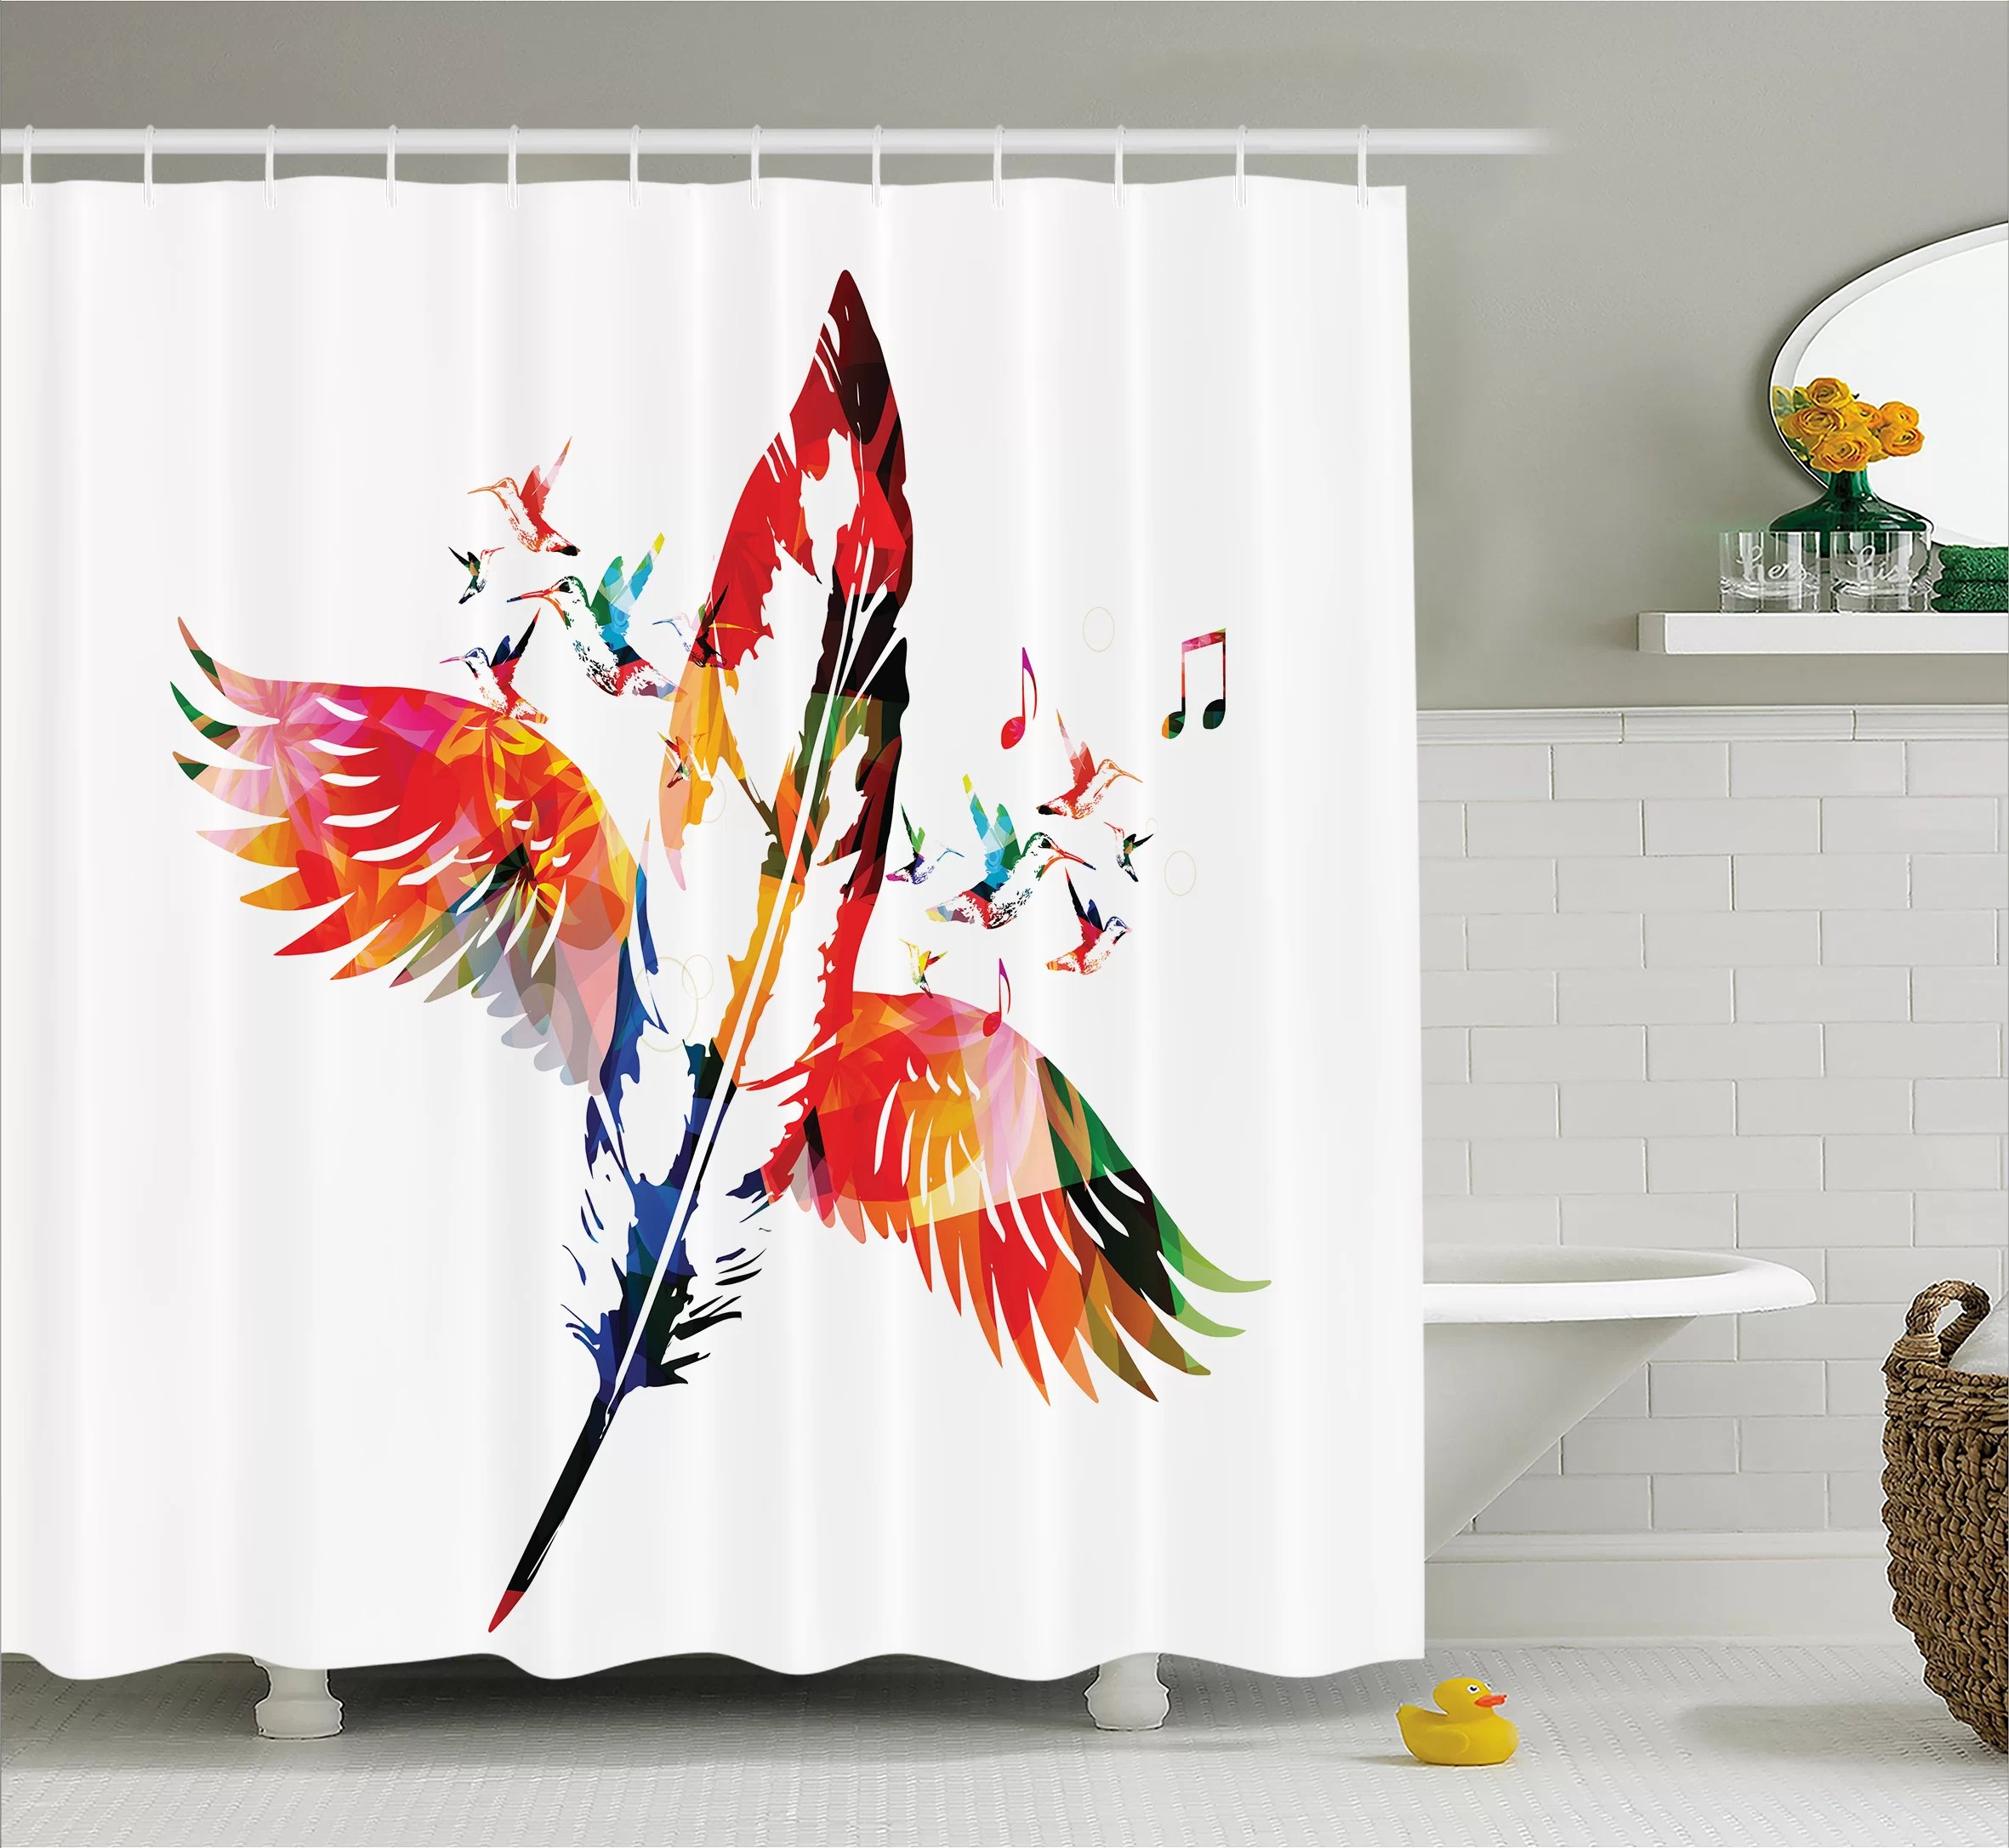 shower curtain 12 holes set 72x72 or